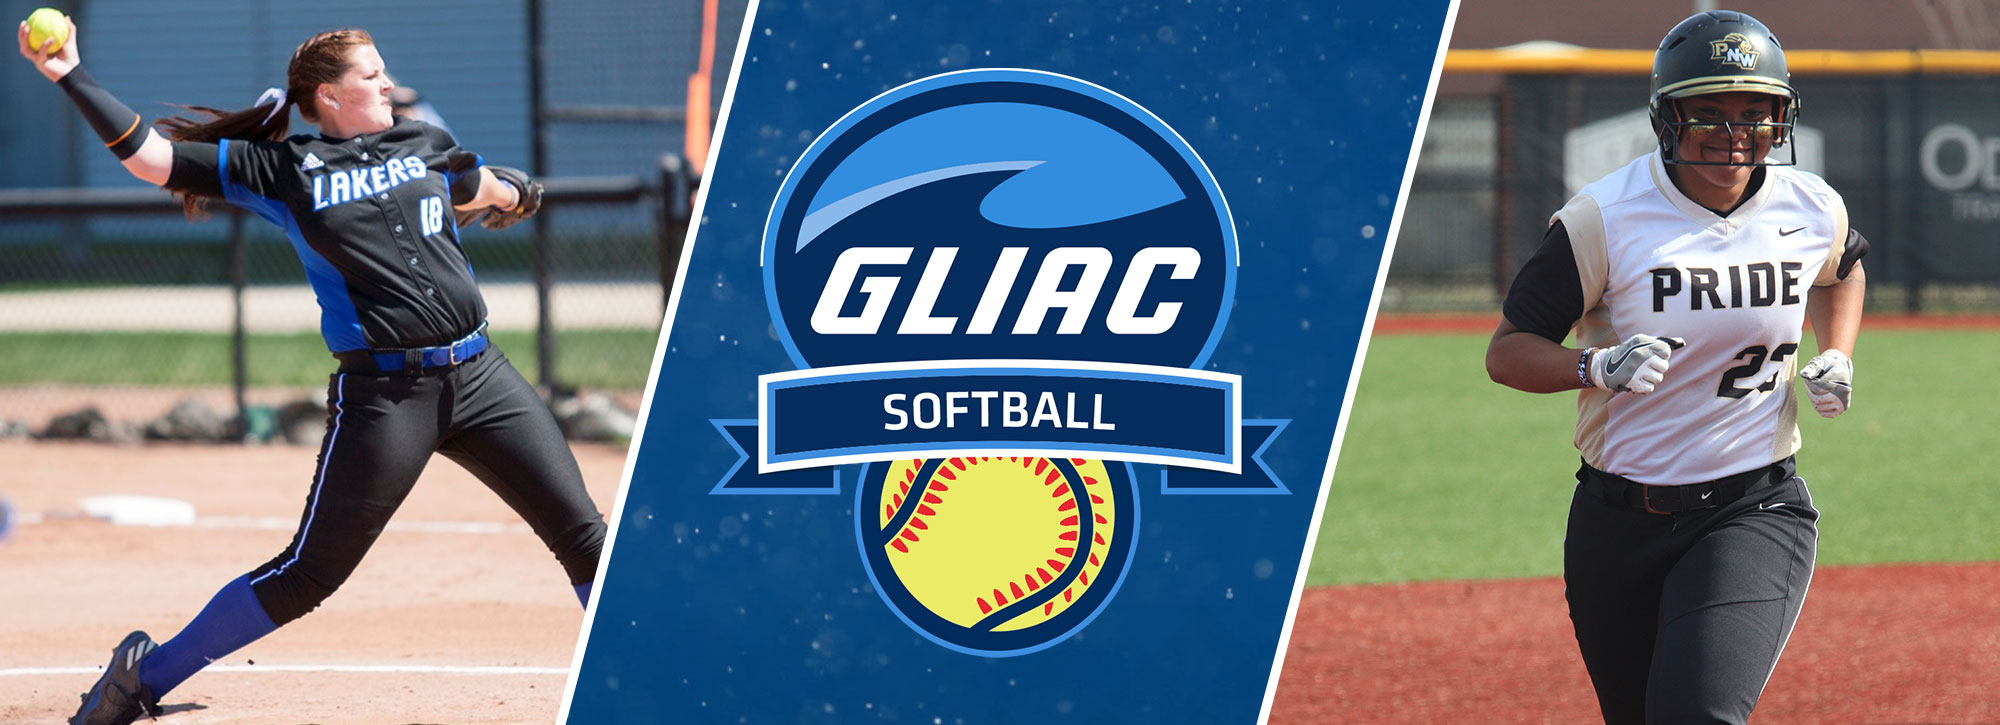 2018 GLIAC Softball Postseason Awards & All-Conference Teams Announced